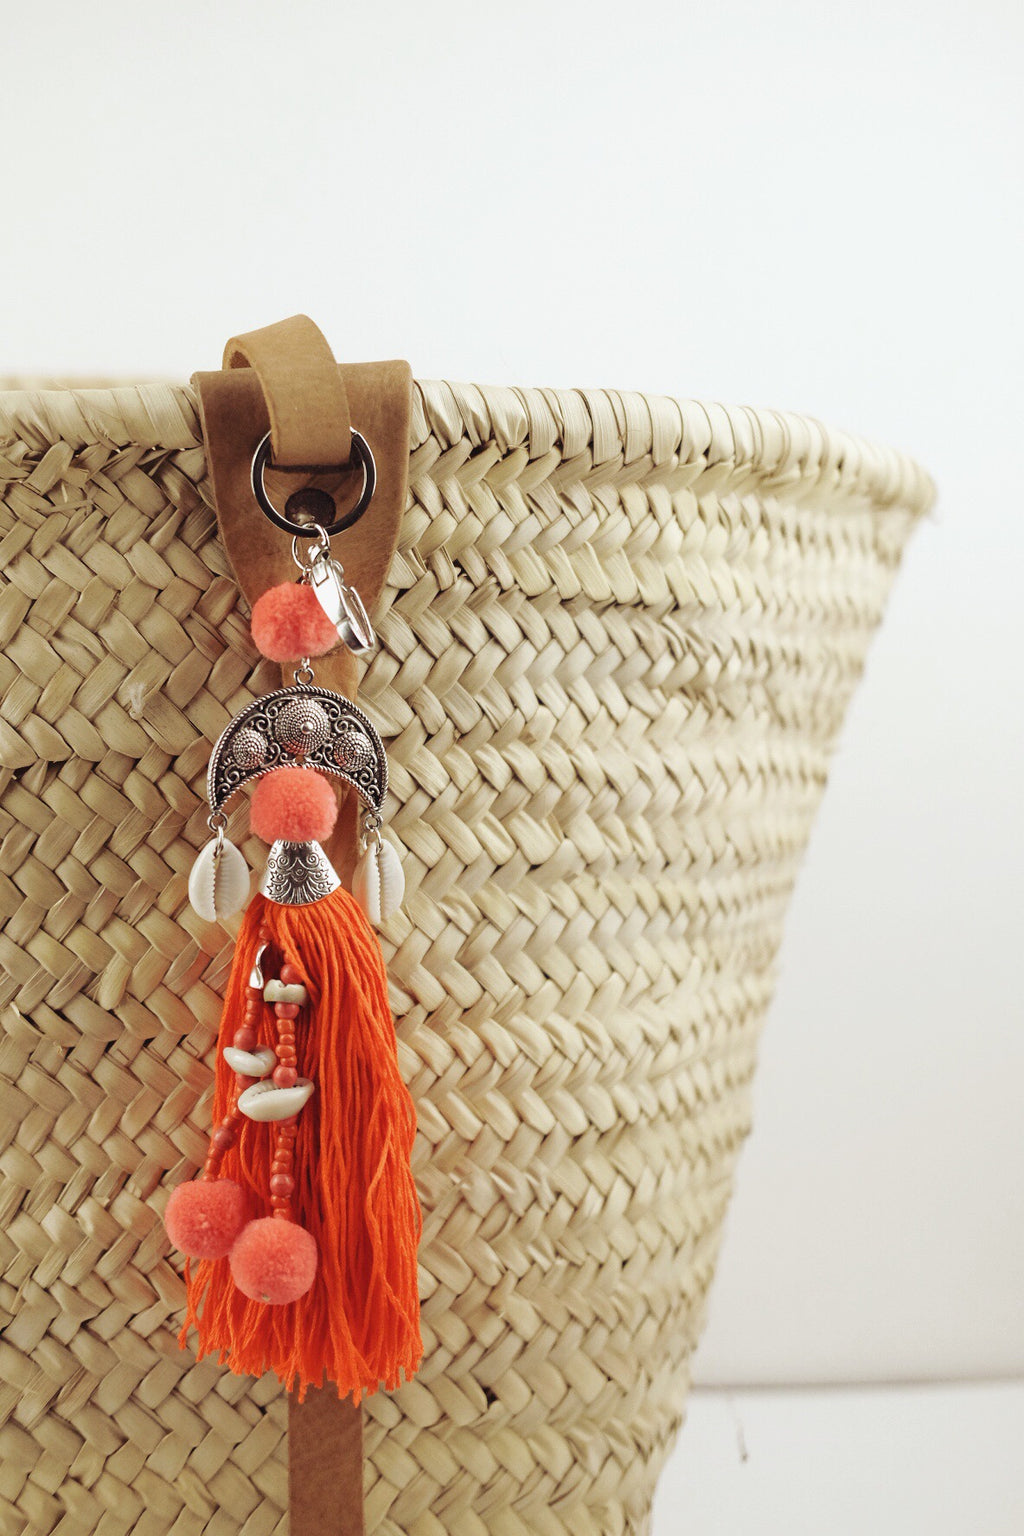 Tangerine Bag Charm with Cowrie Shells